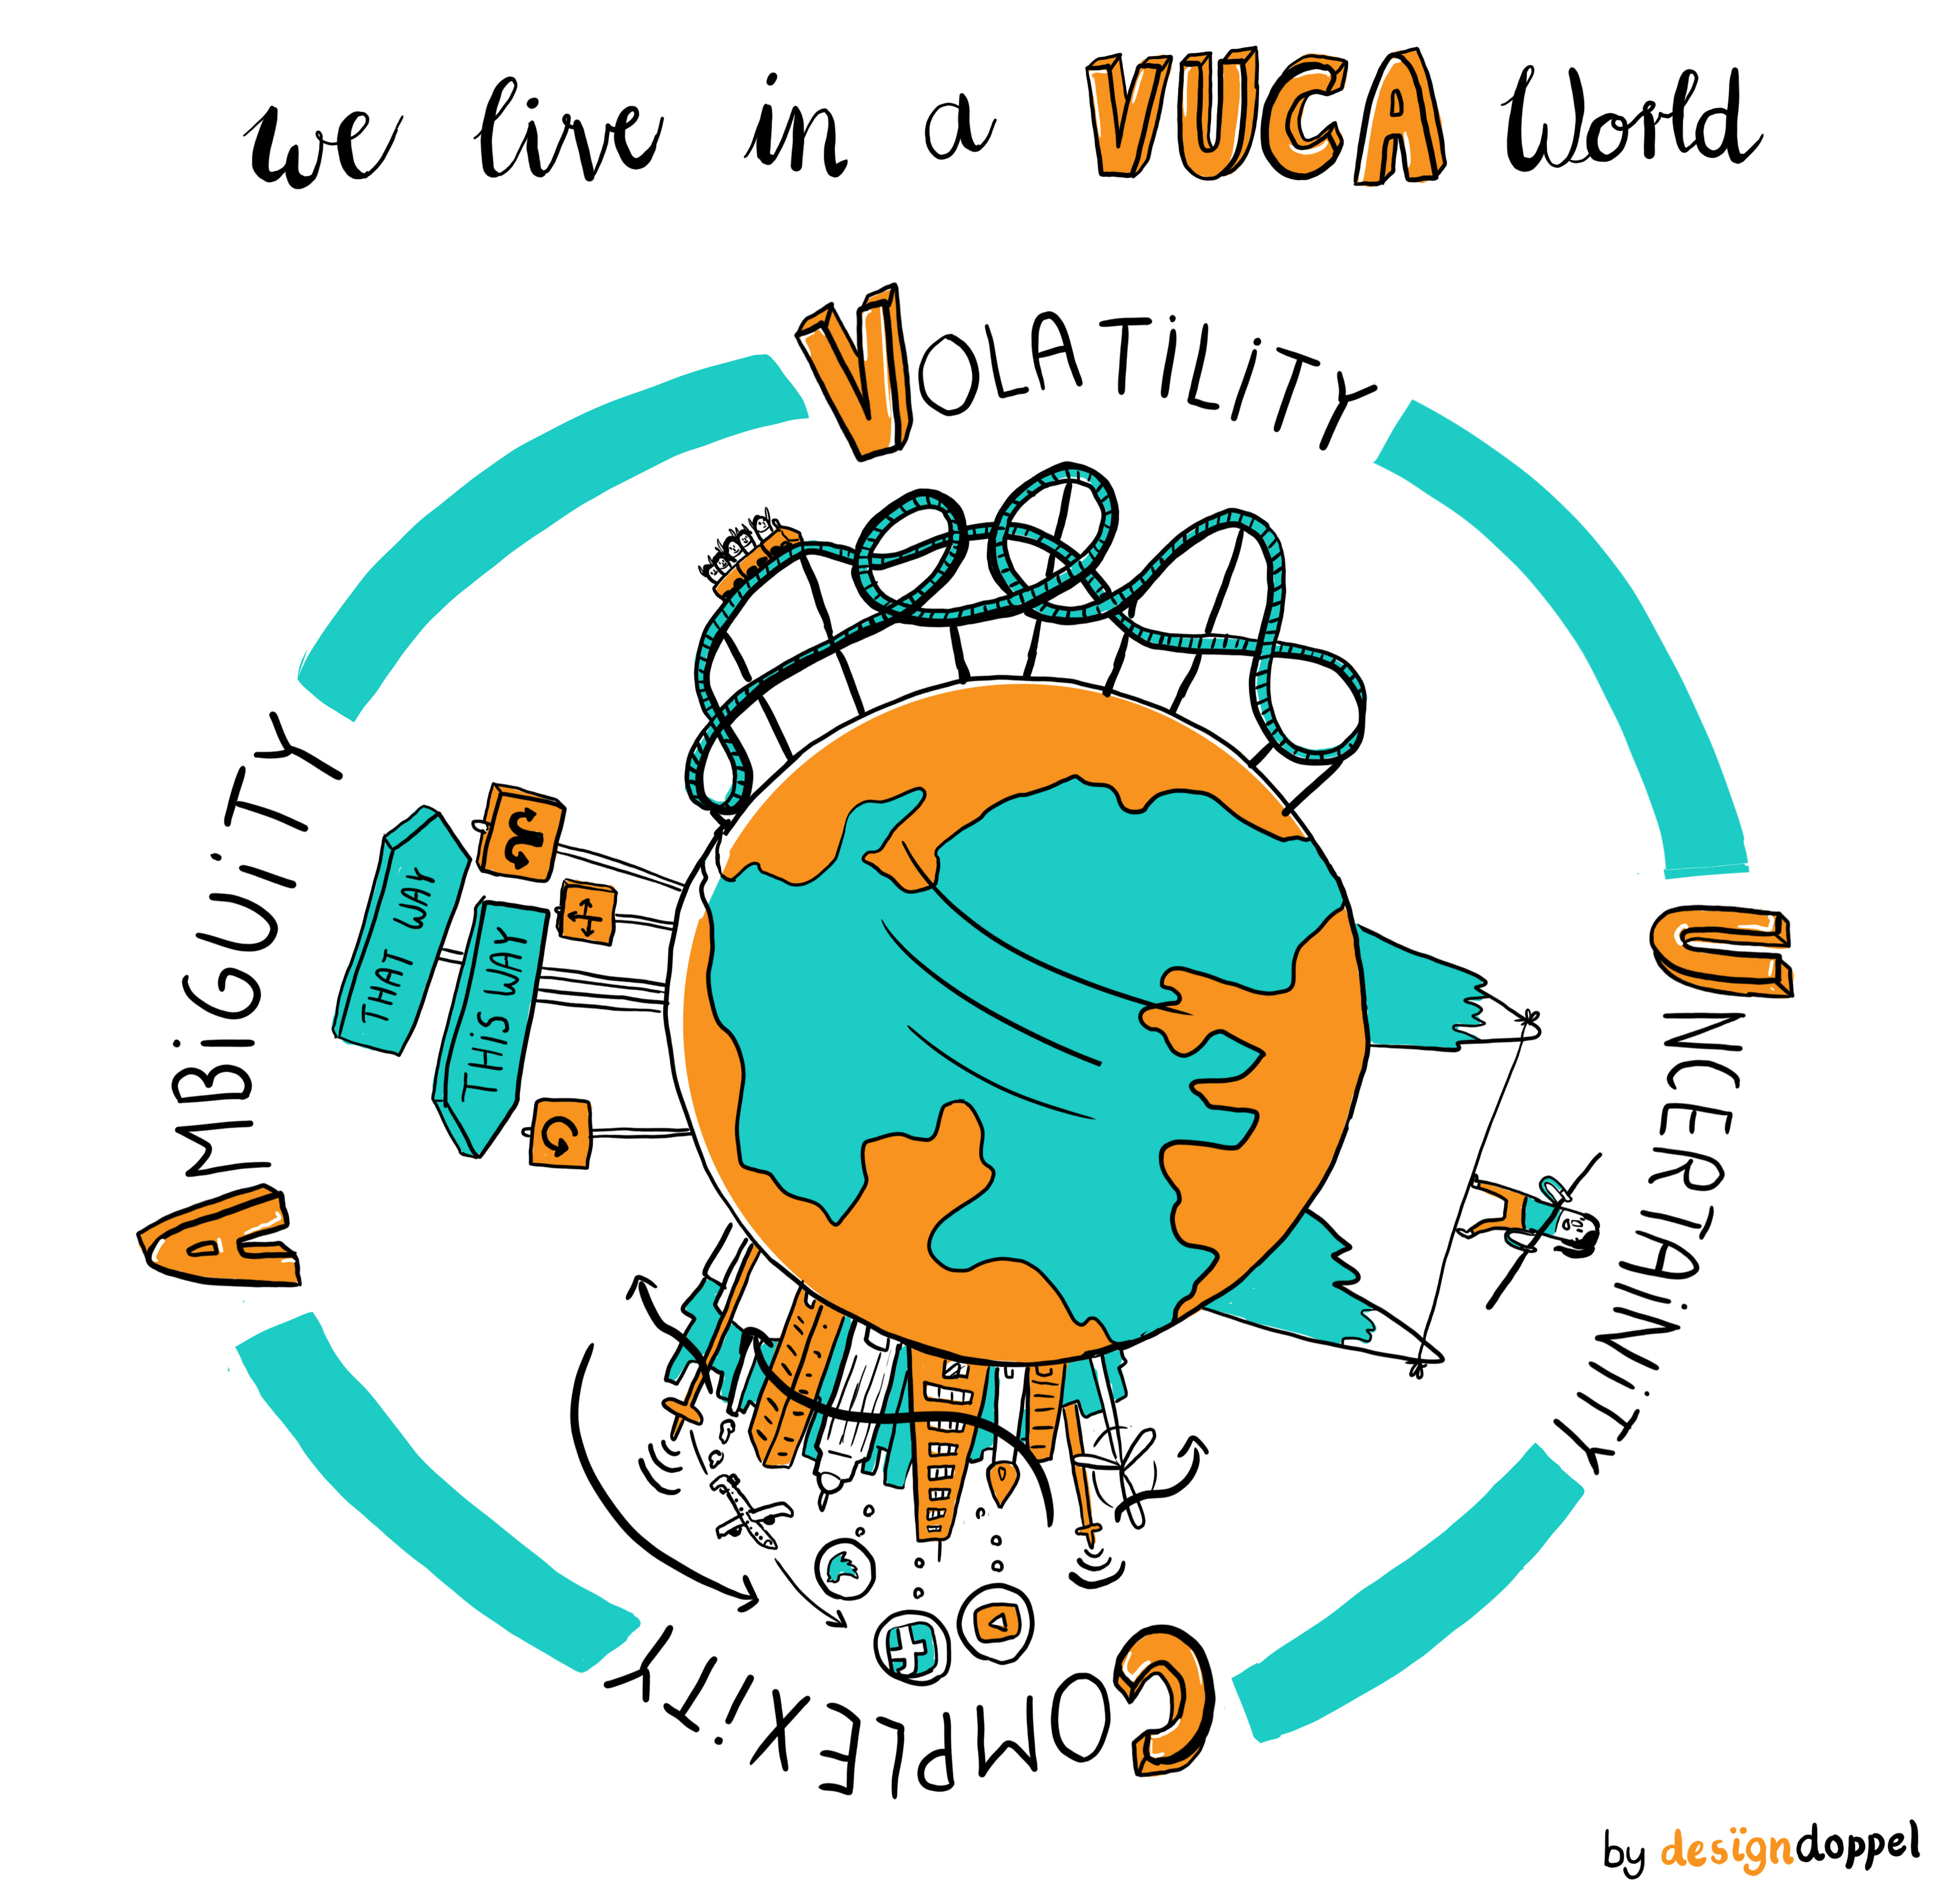 VUCA Illustration Designdoppel Visualisierung Graphic Recording